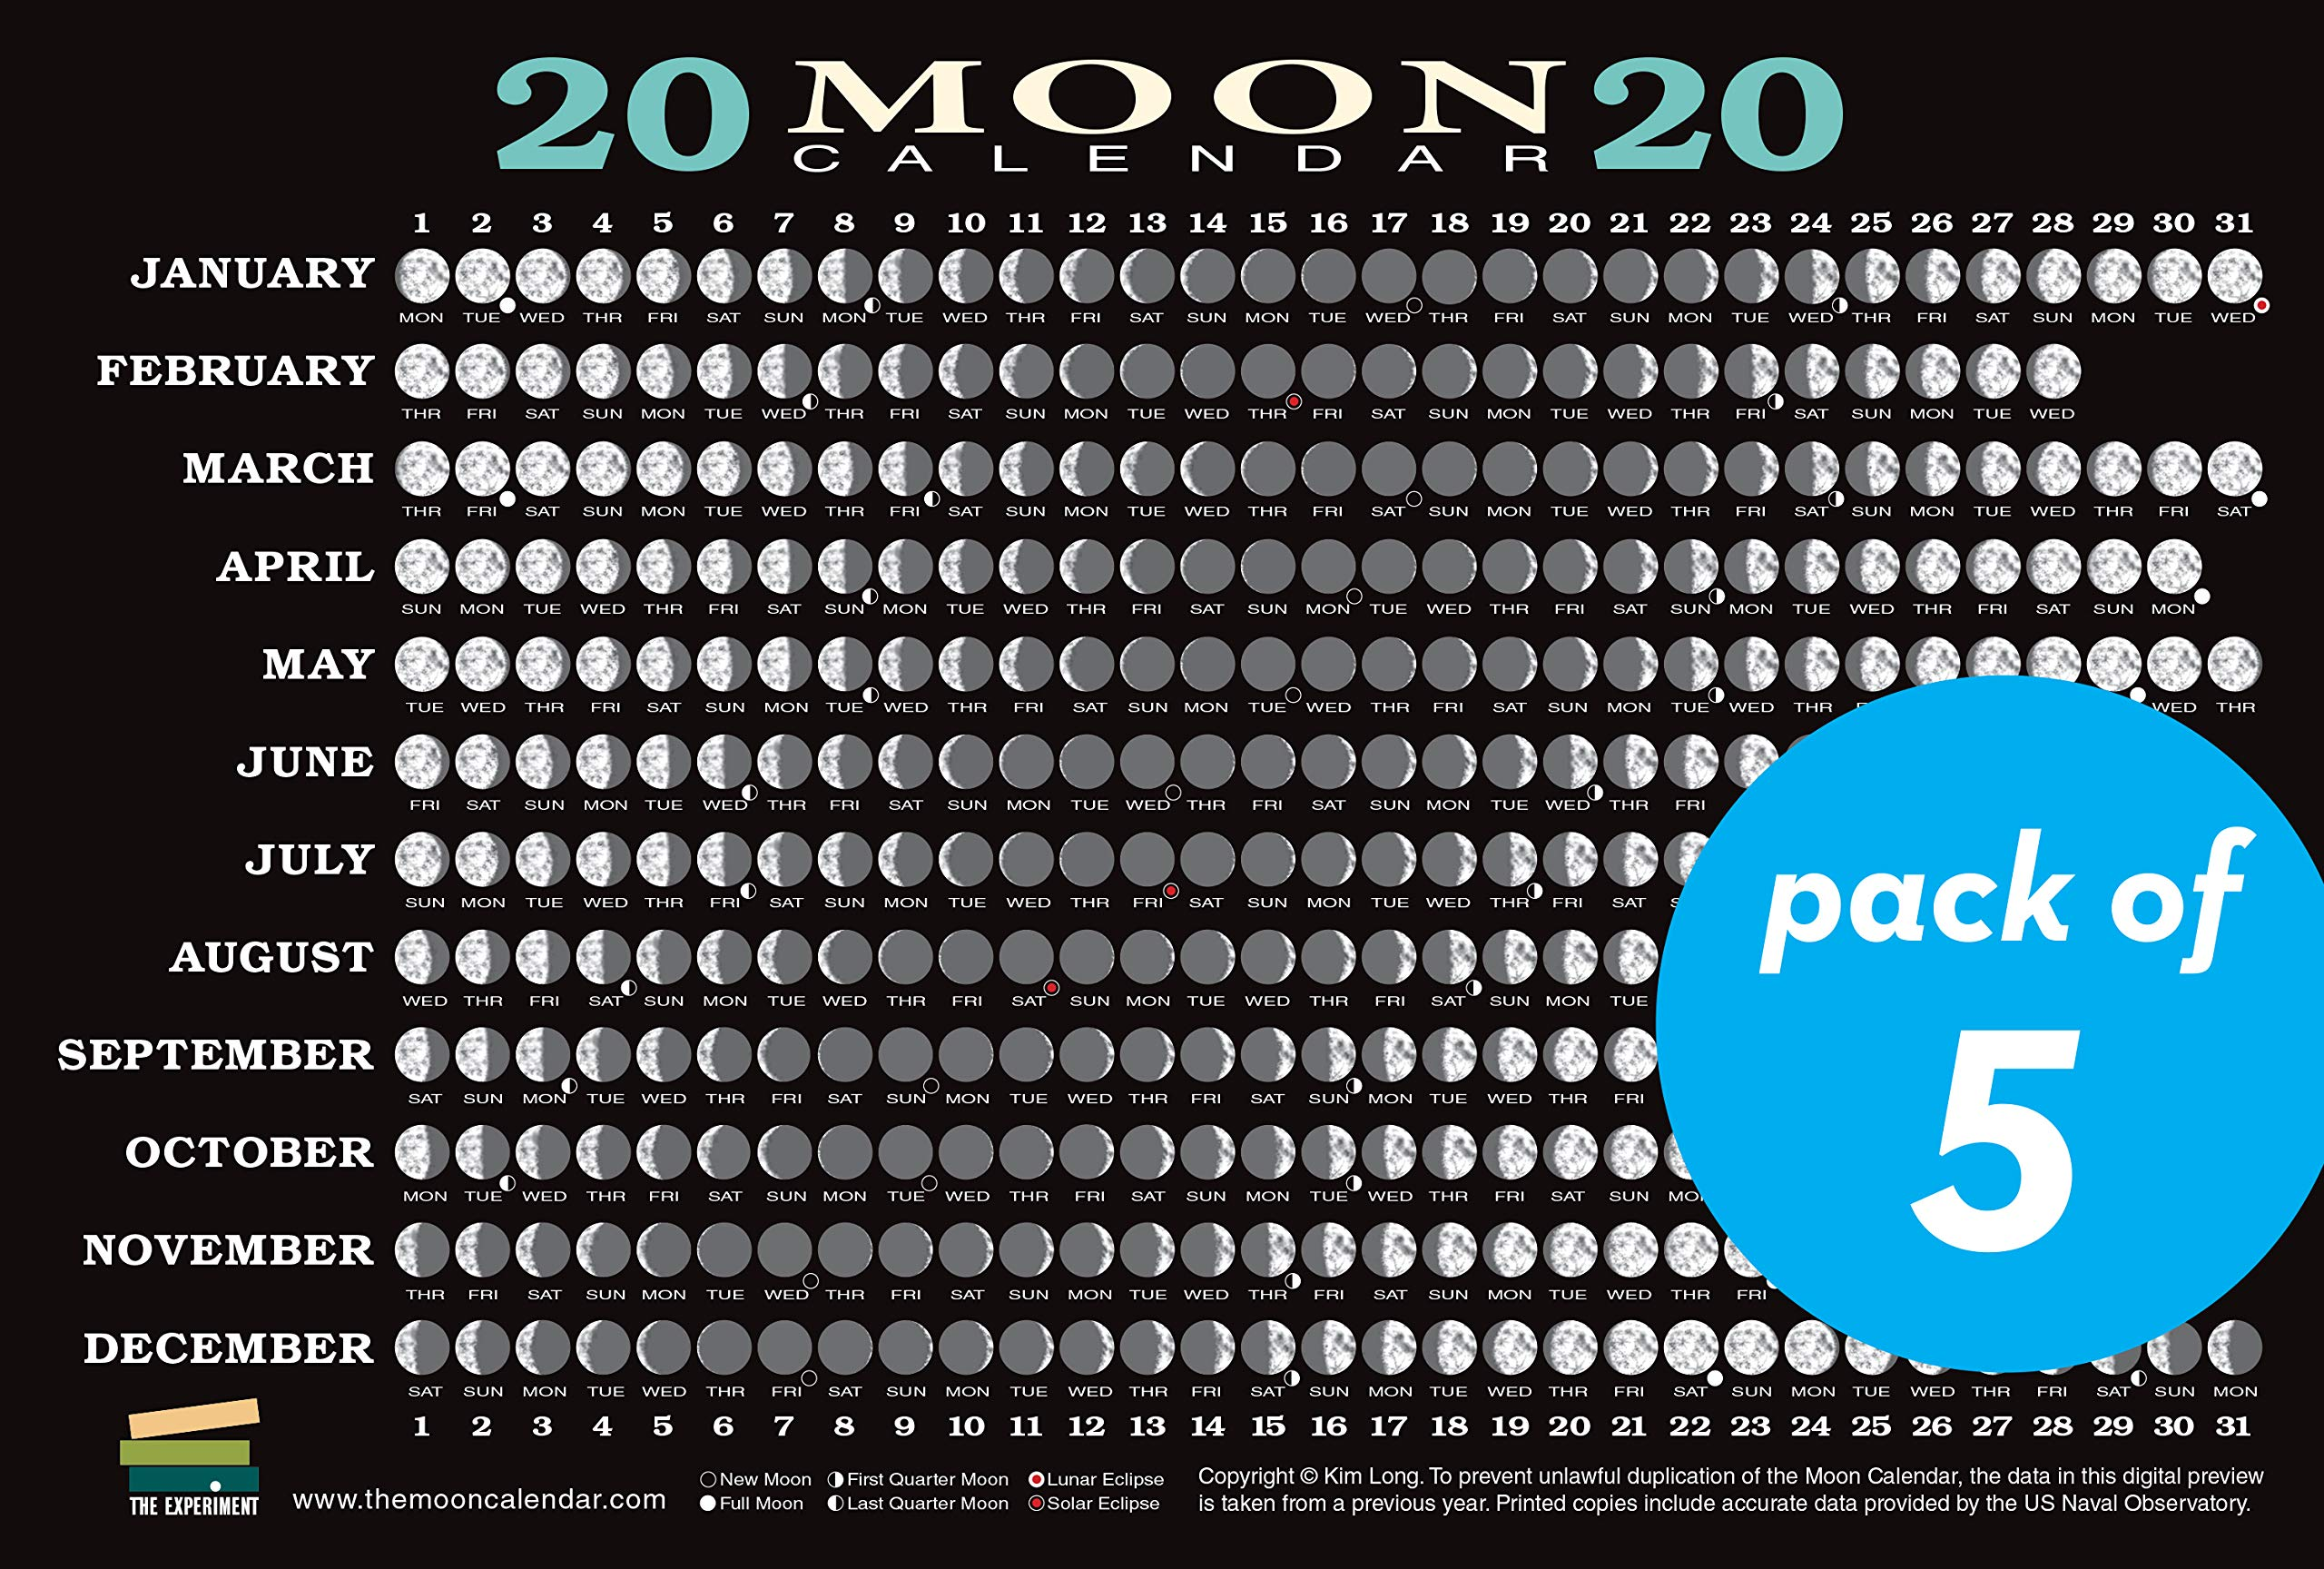 Moon Calendar For 2020 2020 Moon Calendar Card (5 pack): Lunar Phases, Eclipses, and More